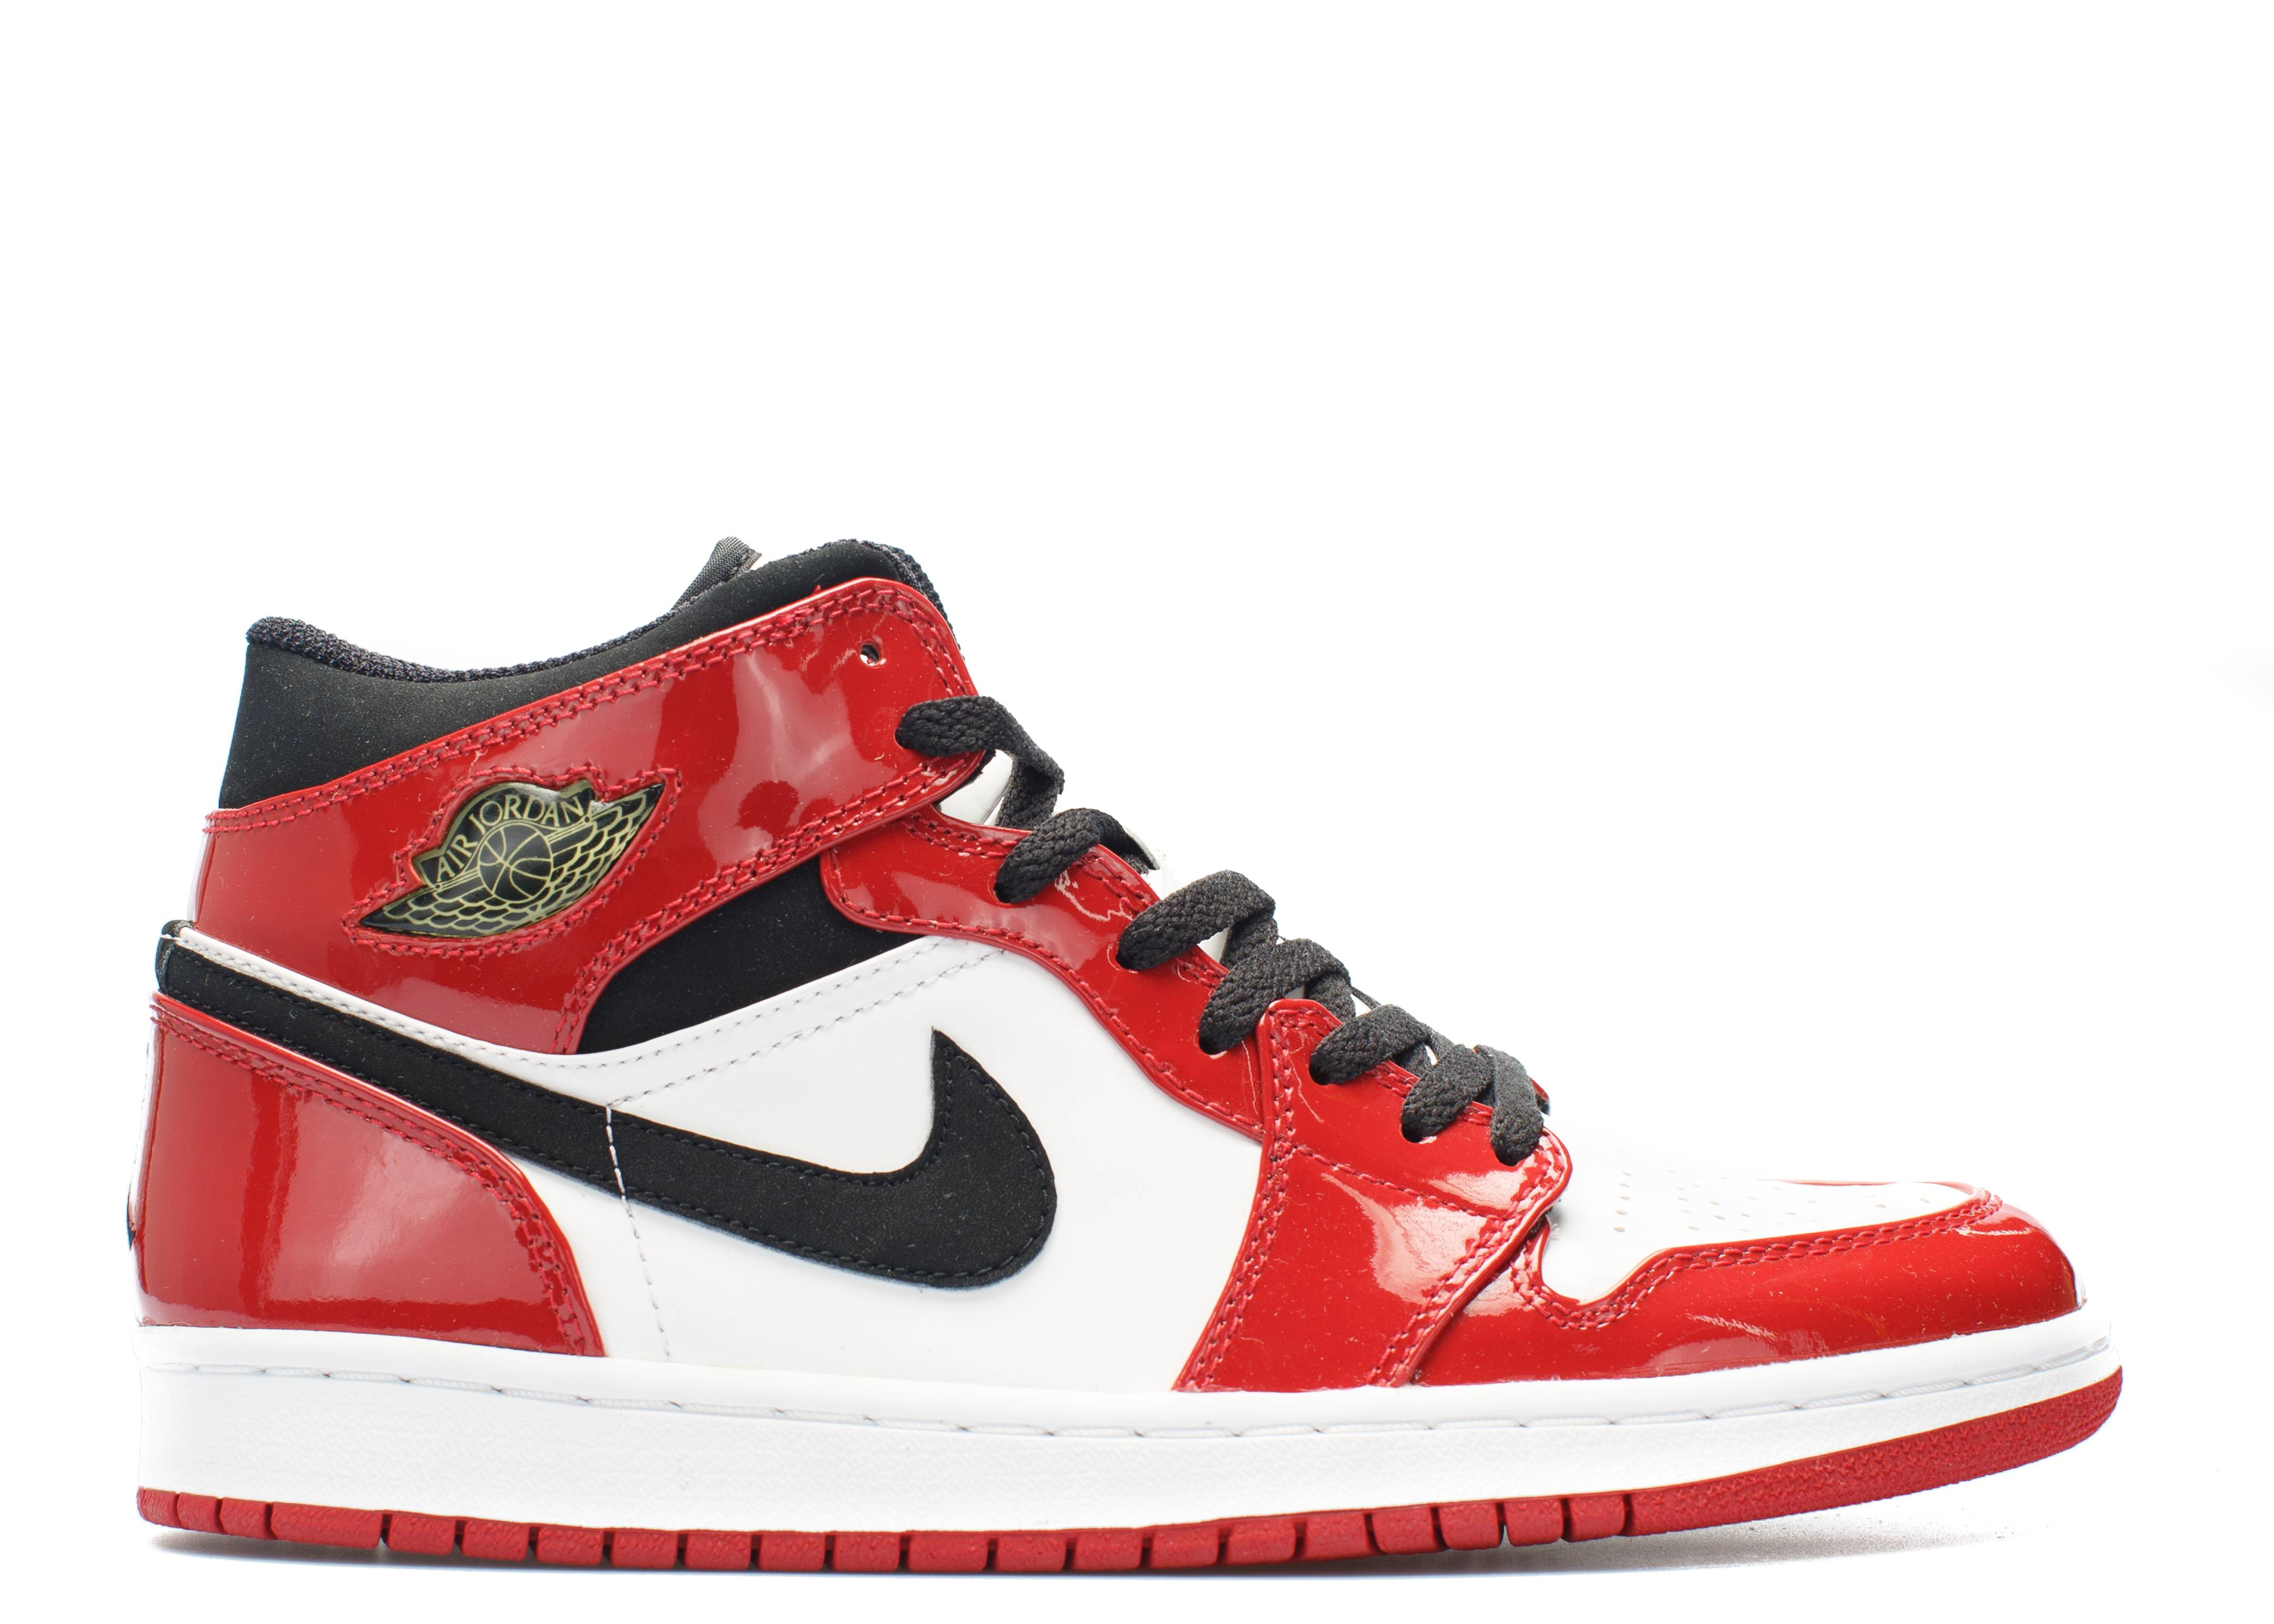 air jordan 1 retro red leather black and white